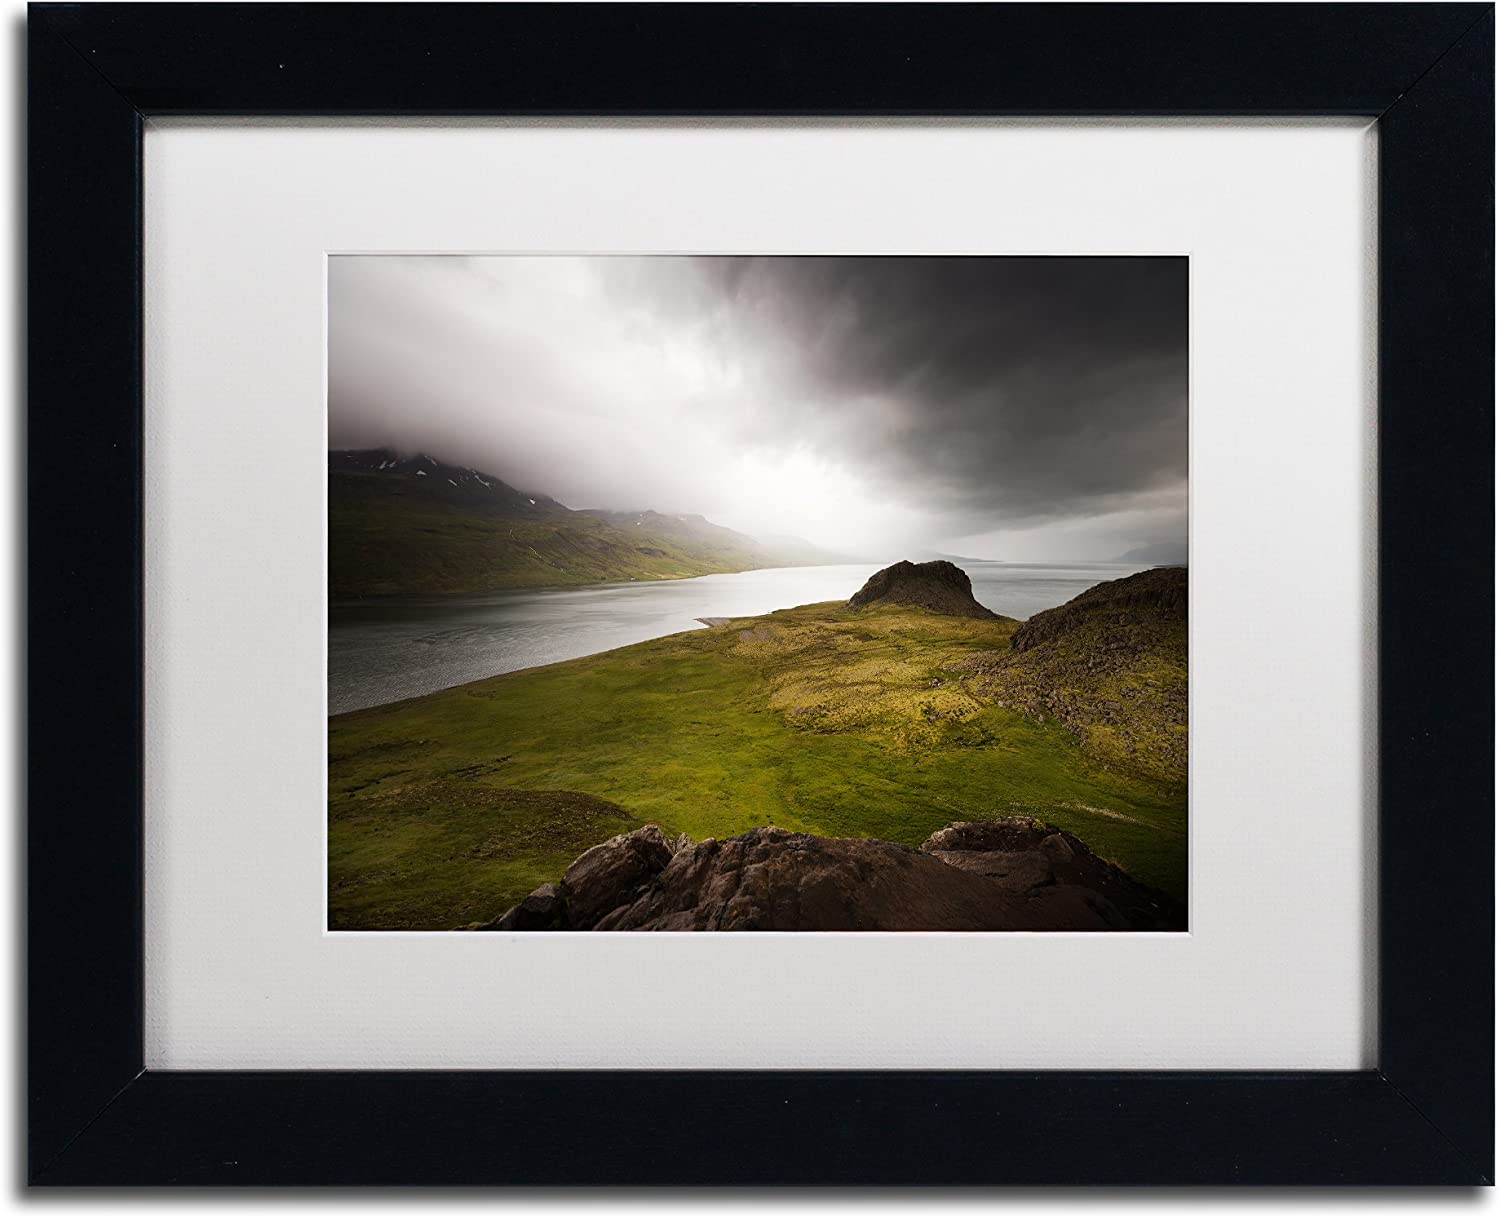 Amazon Com Beautiful Loneliness By Philippe Sainte Laudy White Matte Black Frame 11x14 Inch Home Kitchen